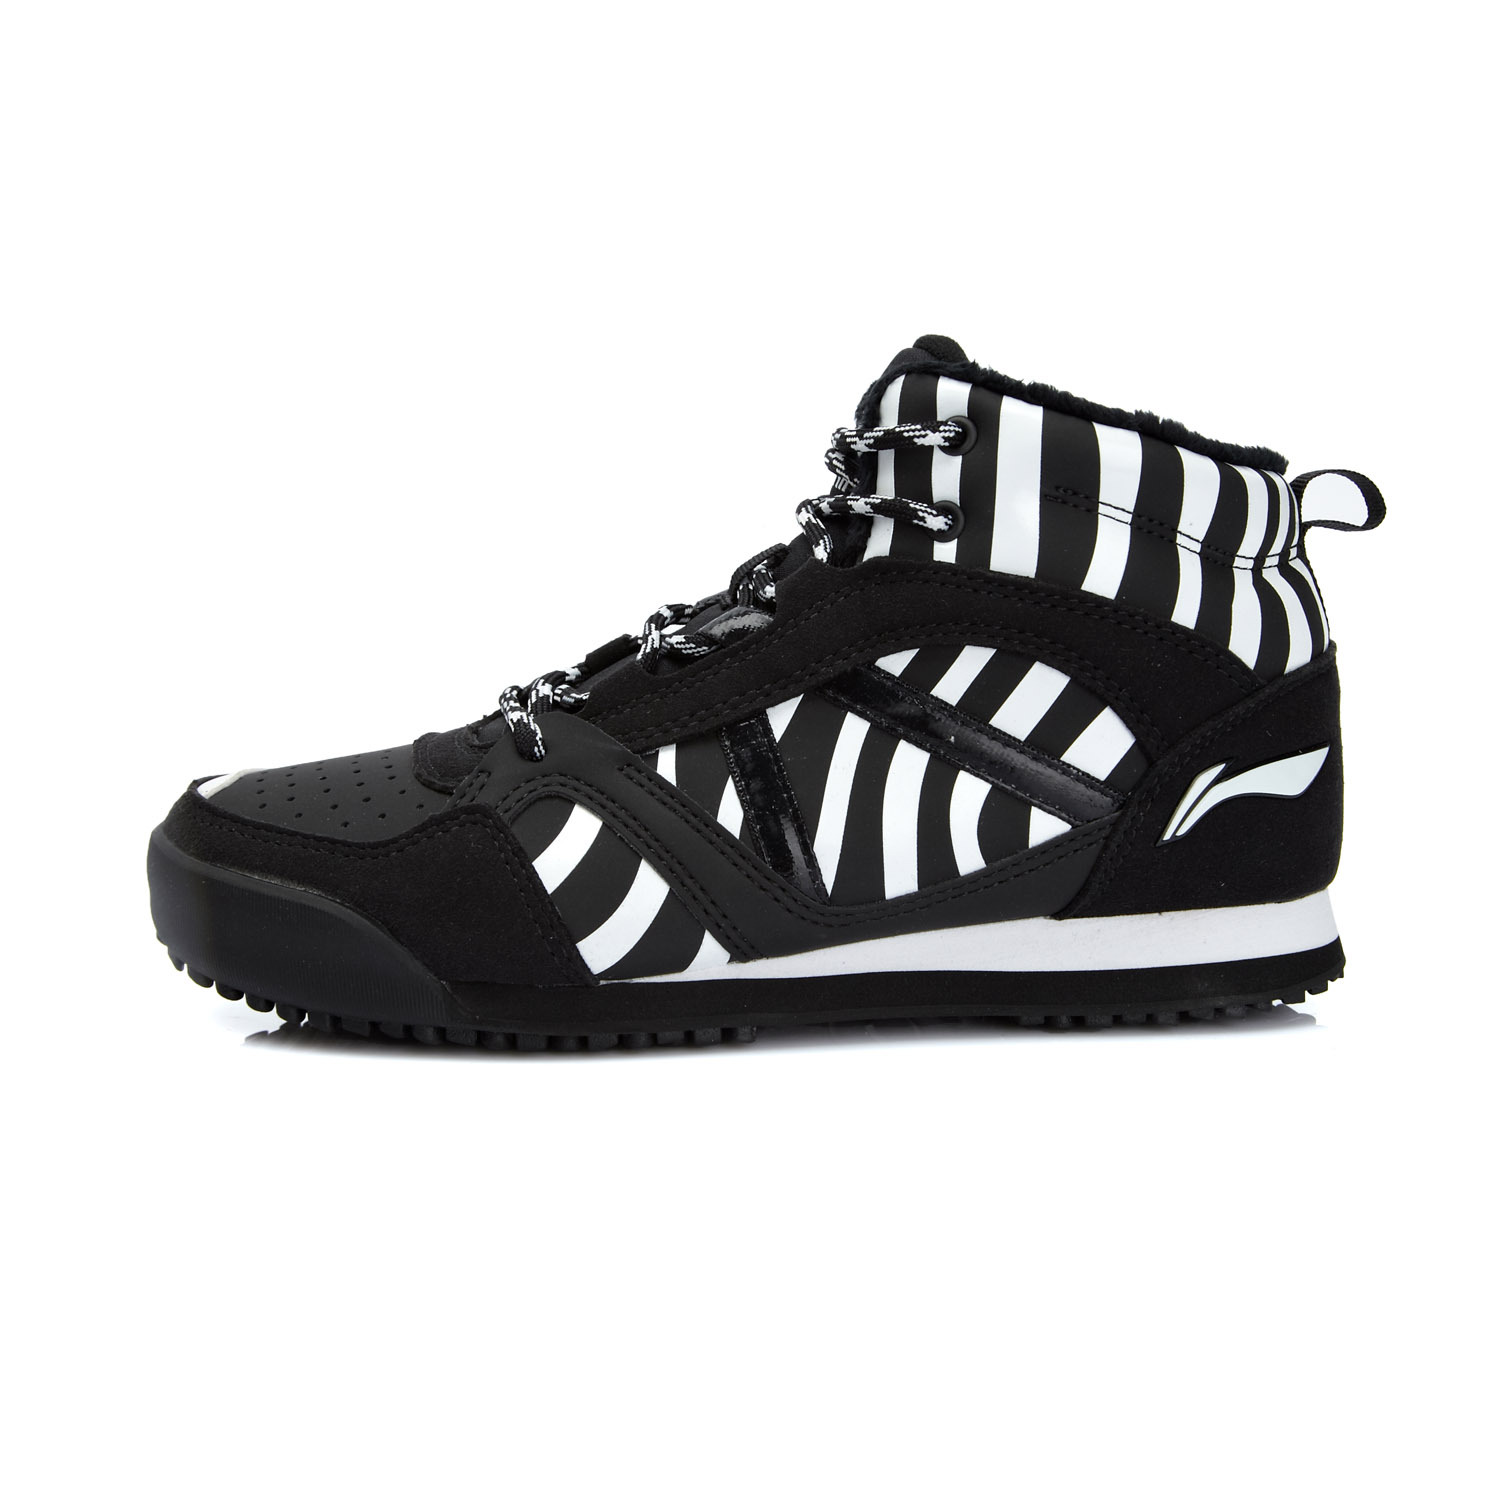 Li Ning authentic winter new style women outdoor flannel warm sports leisure shoes AHCK006